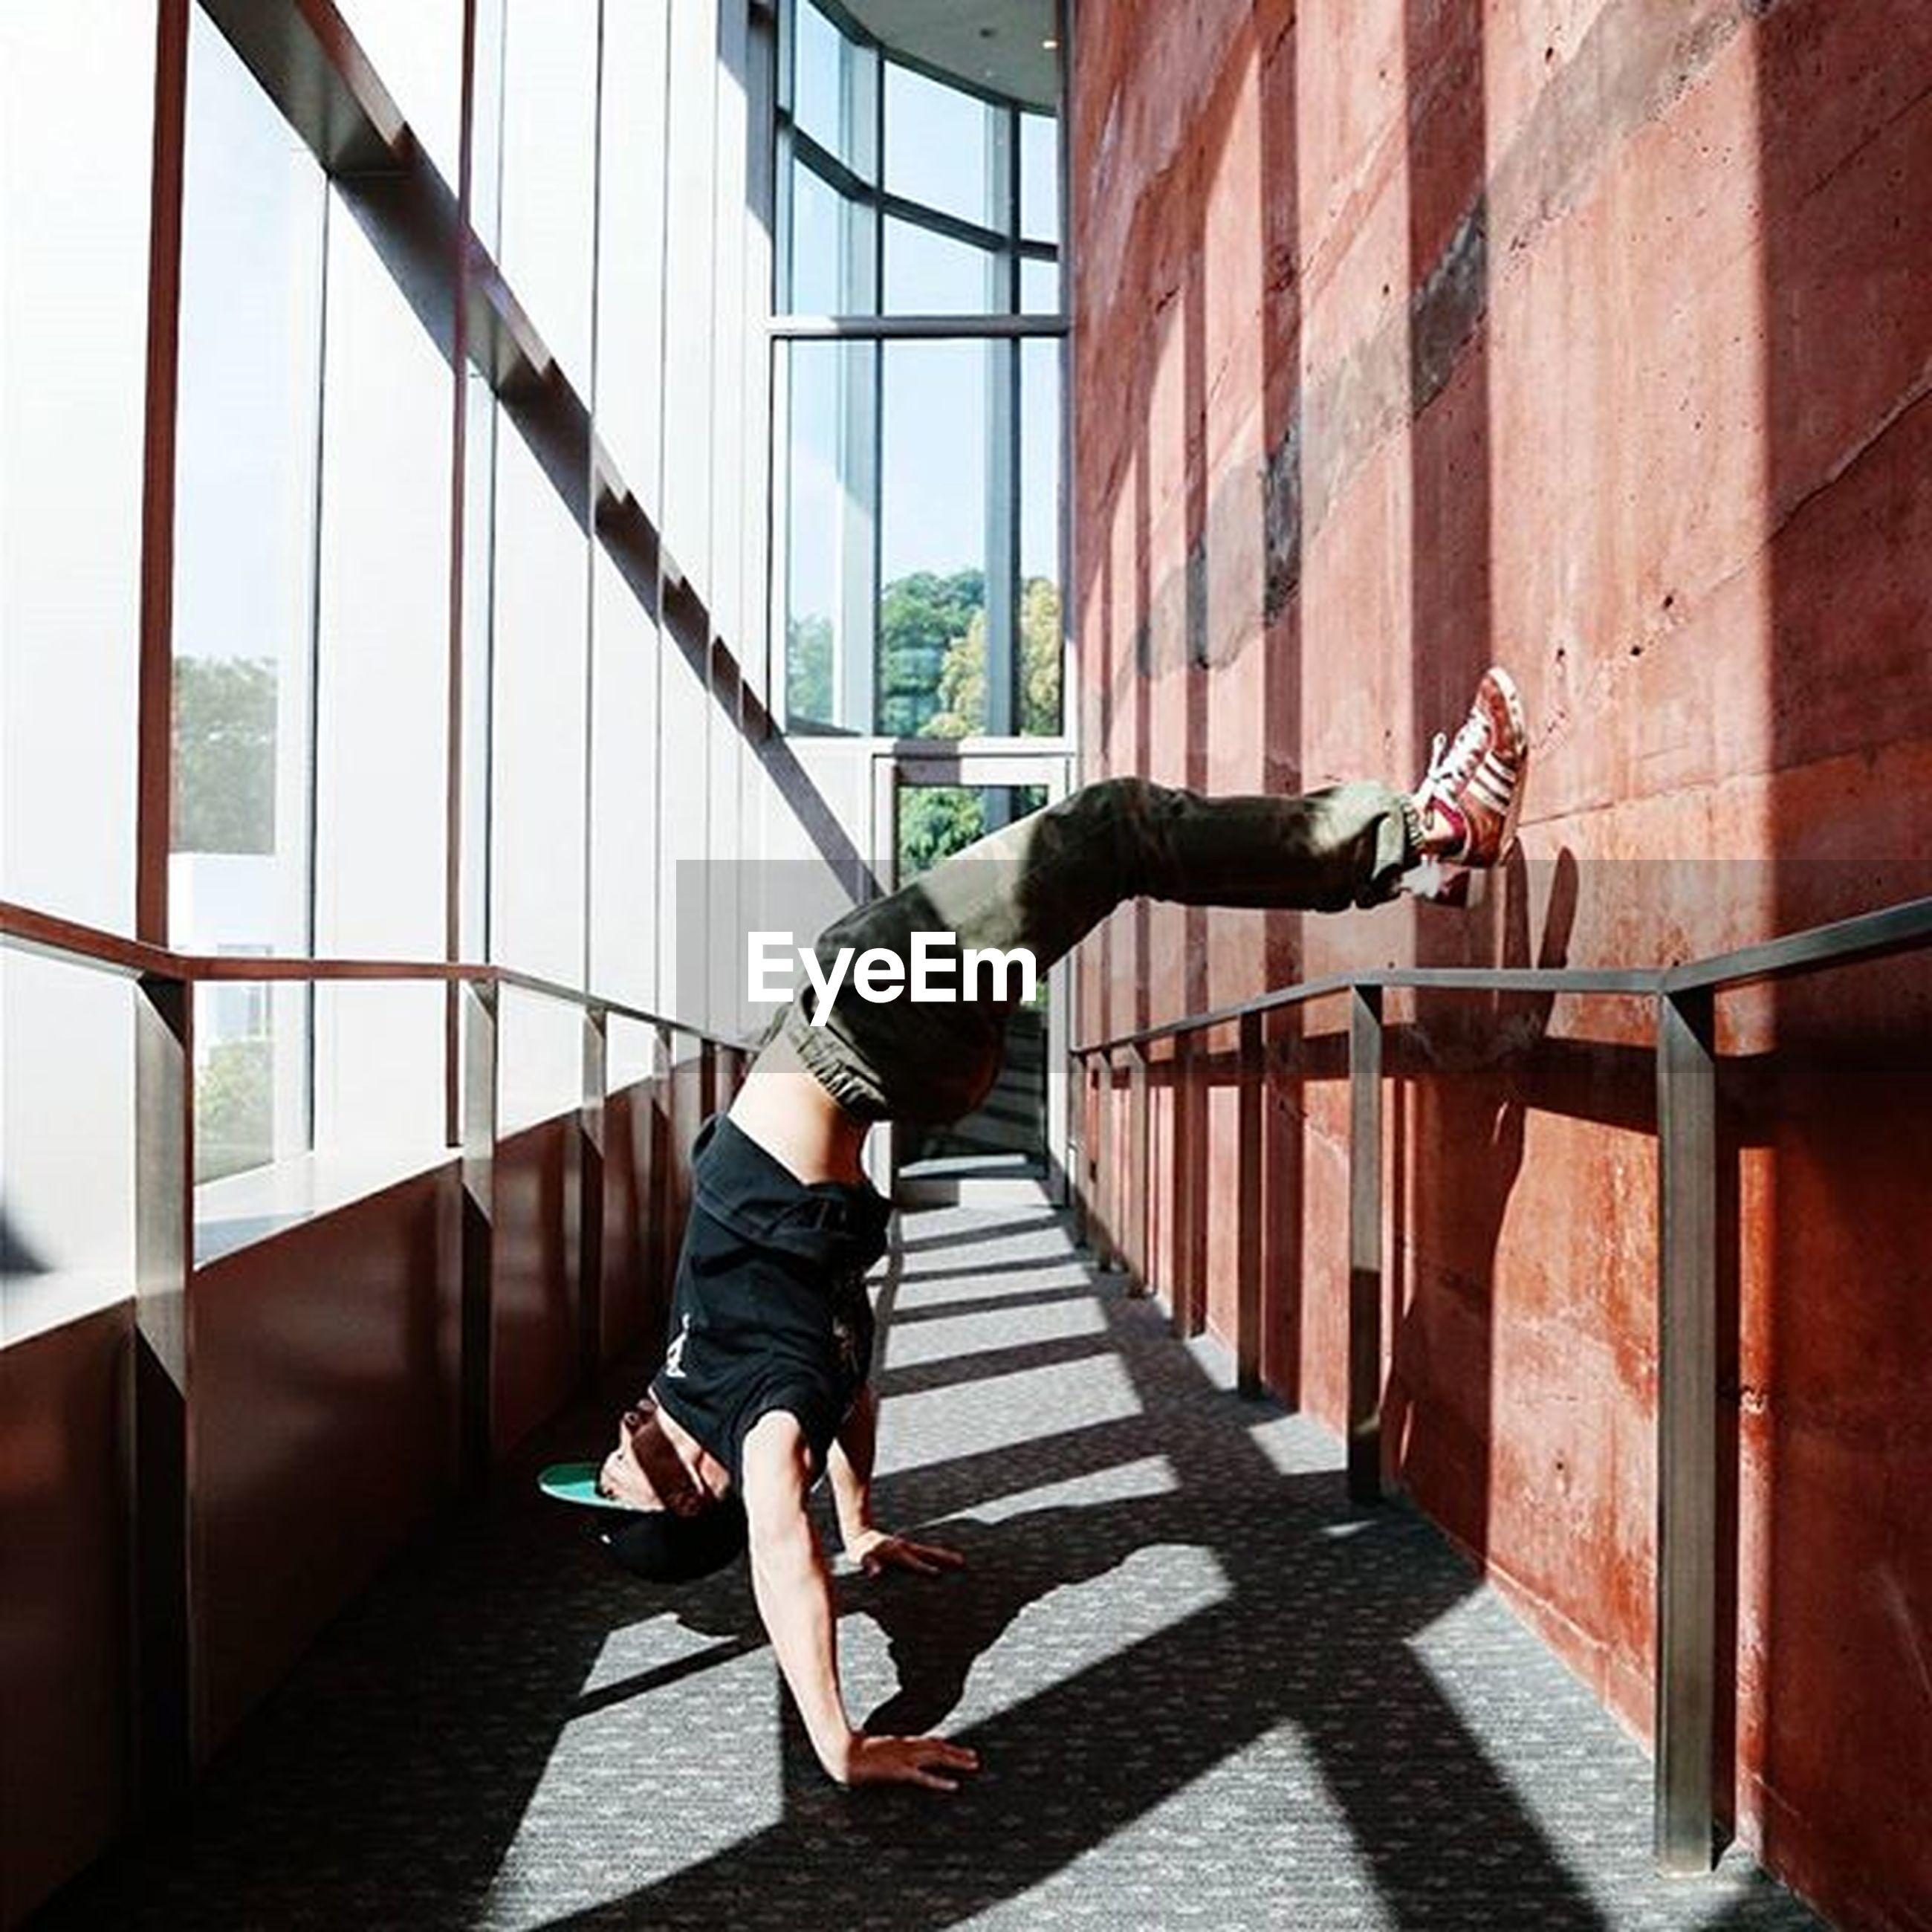 full length, architecture, built structure, lifestyles, railing, building exterior, steps, casual clothing, walking, men, leisure activity, rear view, staircase, steps and staircases, standing, building, person, modern